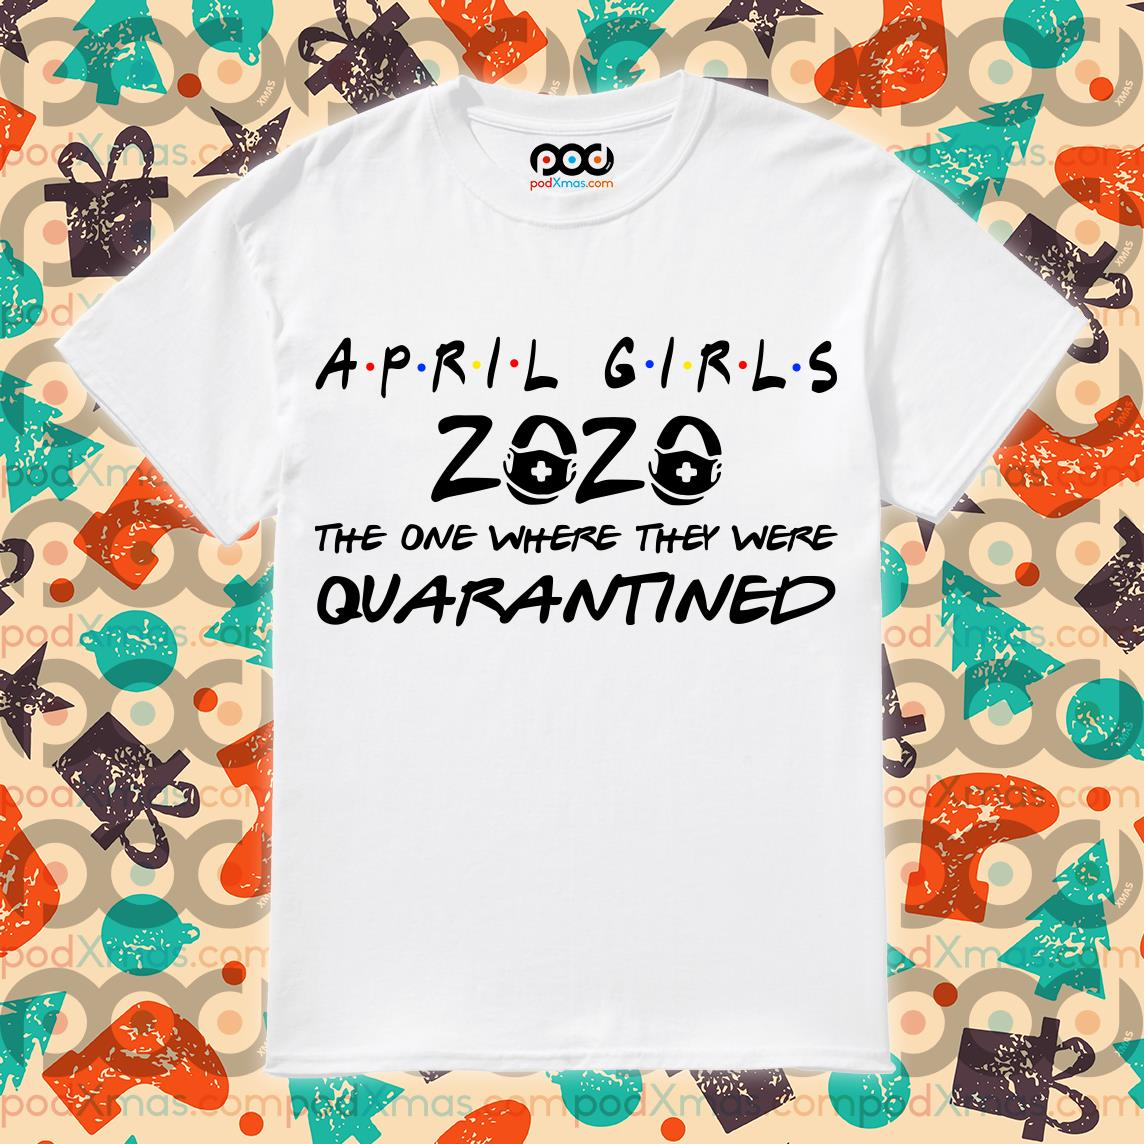 April girls 2020 the one where they were quarantined T-shirt